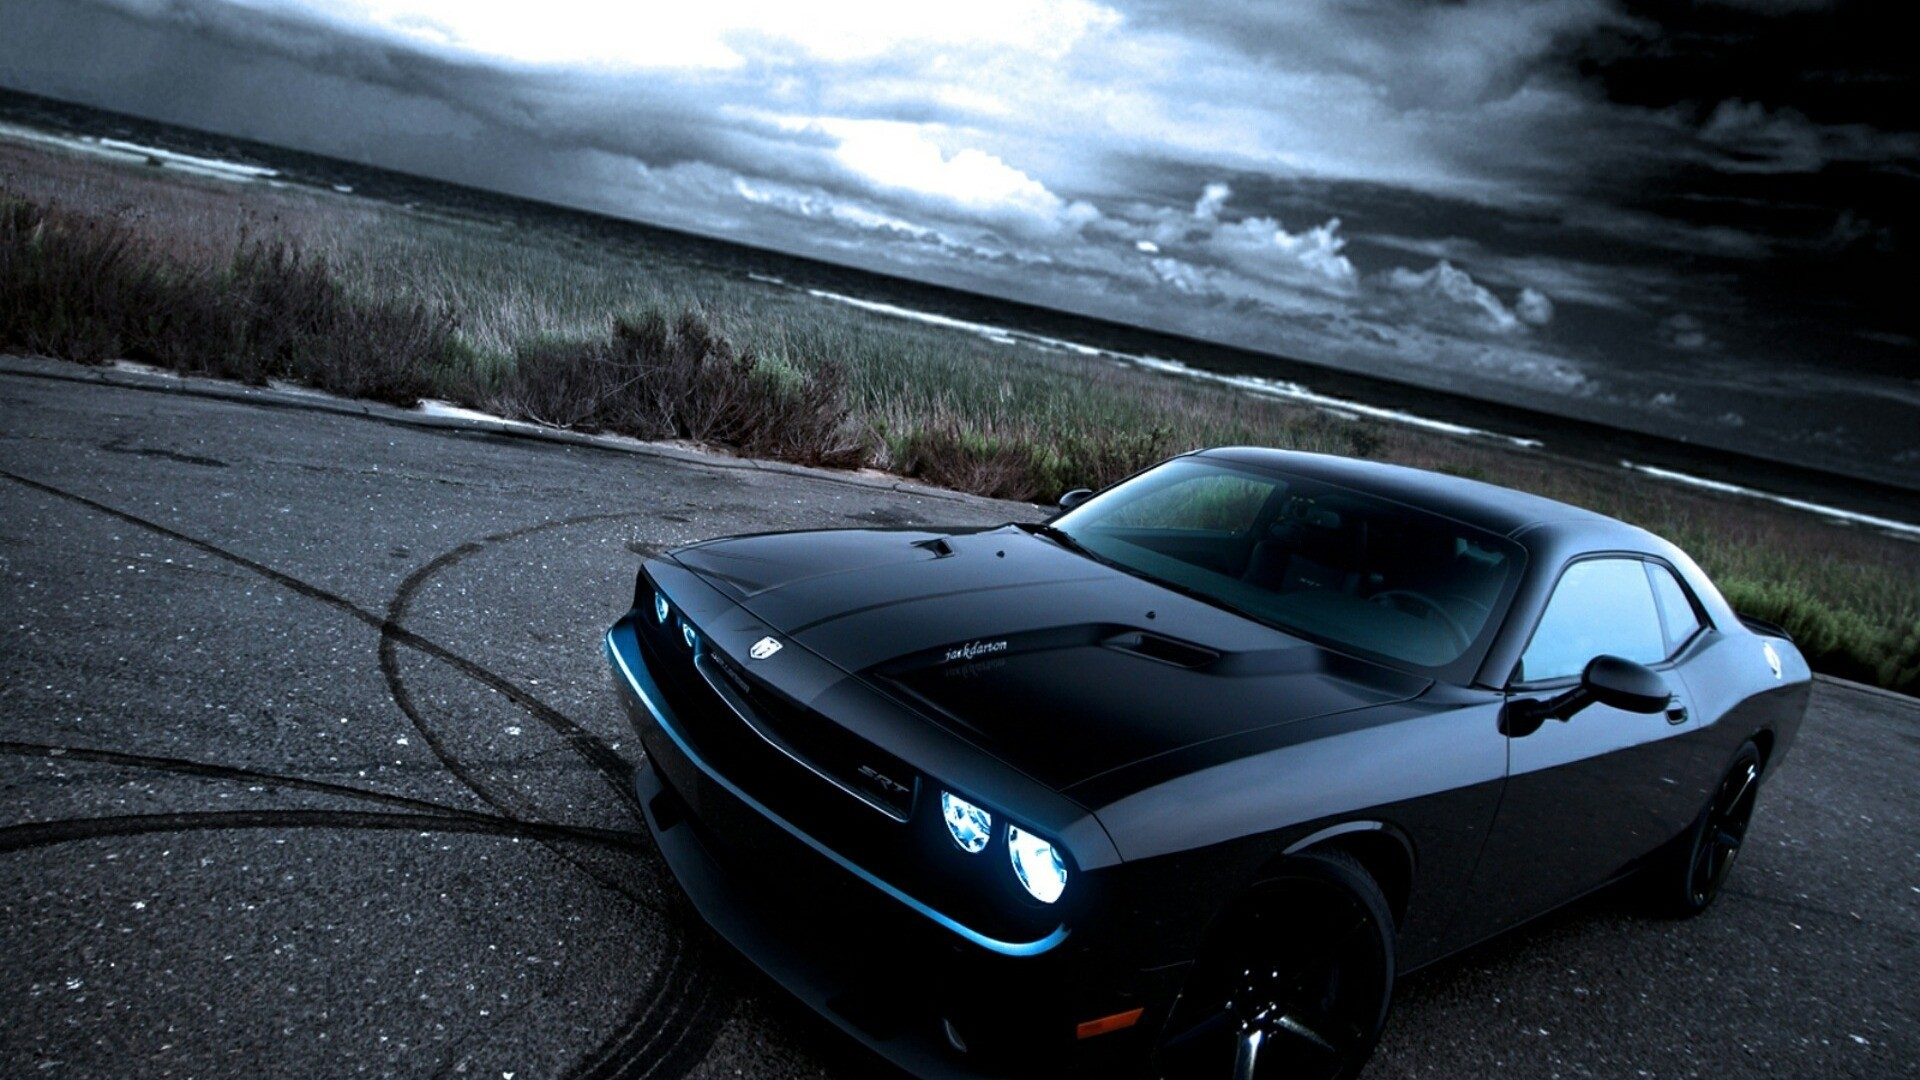 Full Hd Car Wallpapers 1920x1080 63 Images